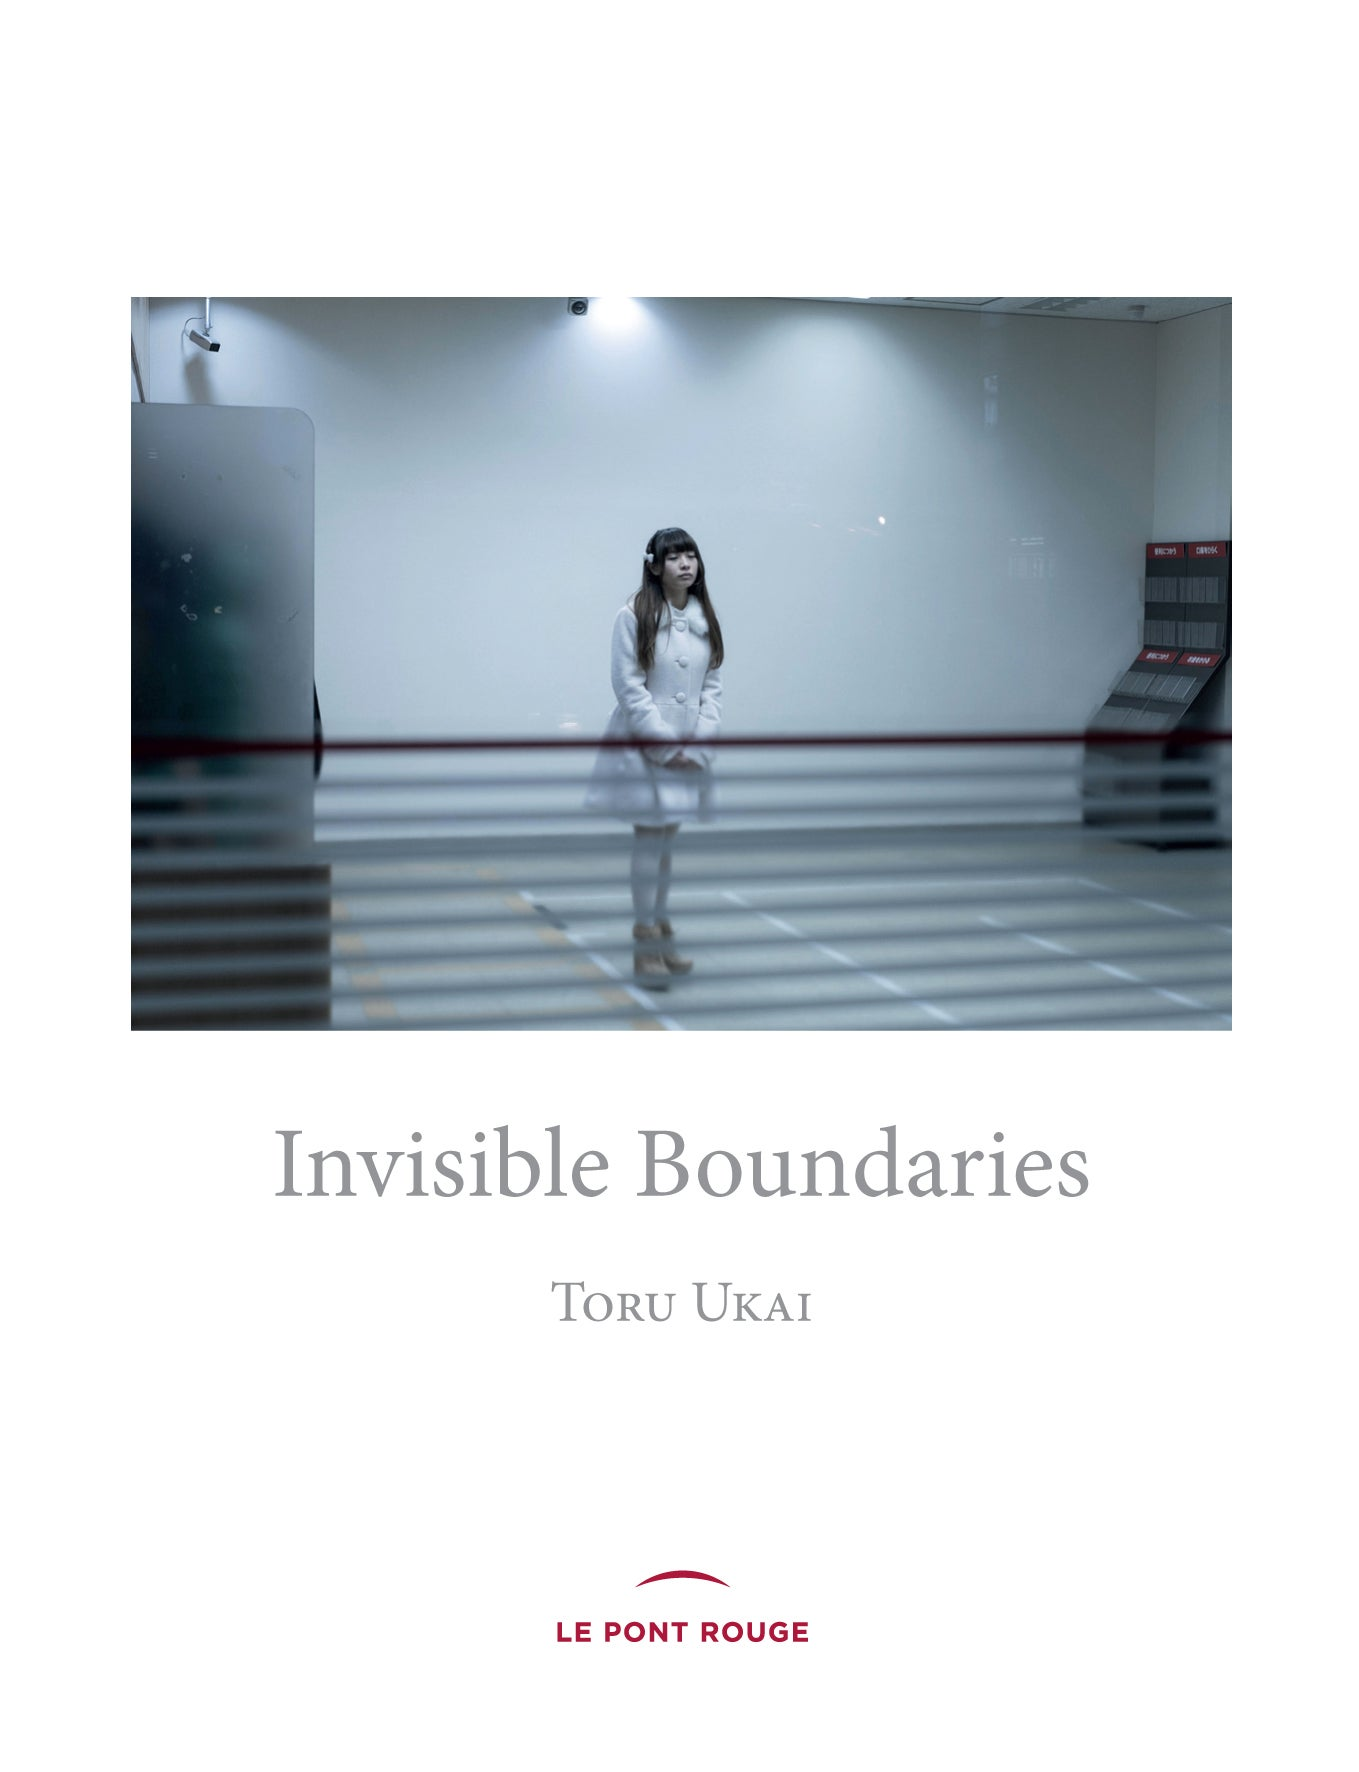 Image of Toru UKAI, Invisible Boundaries